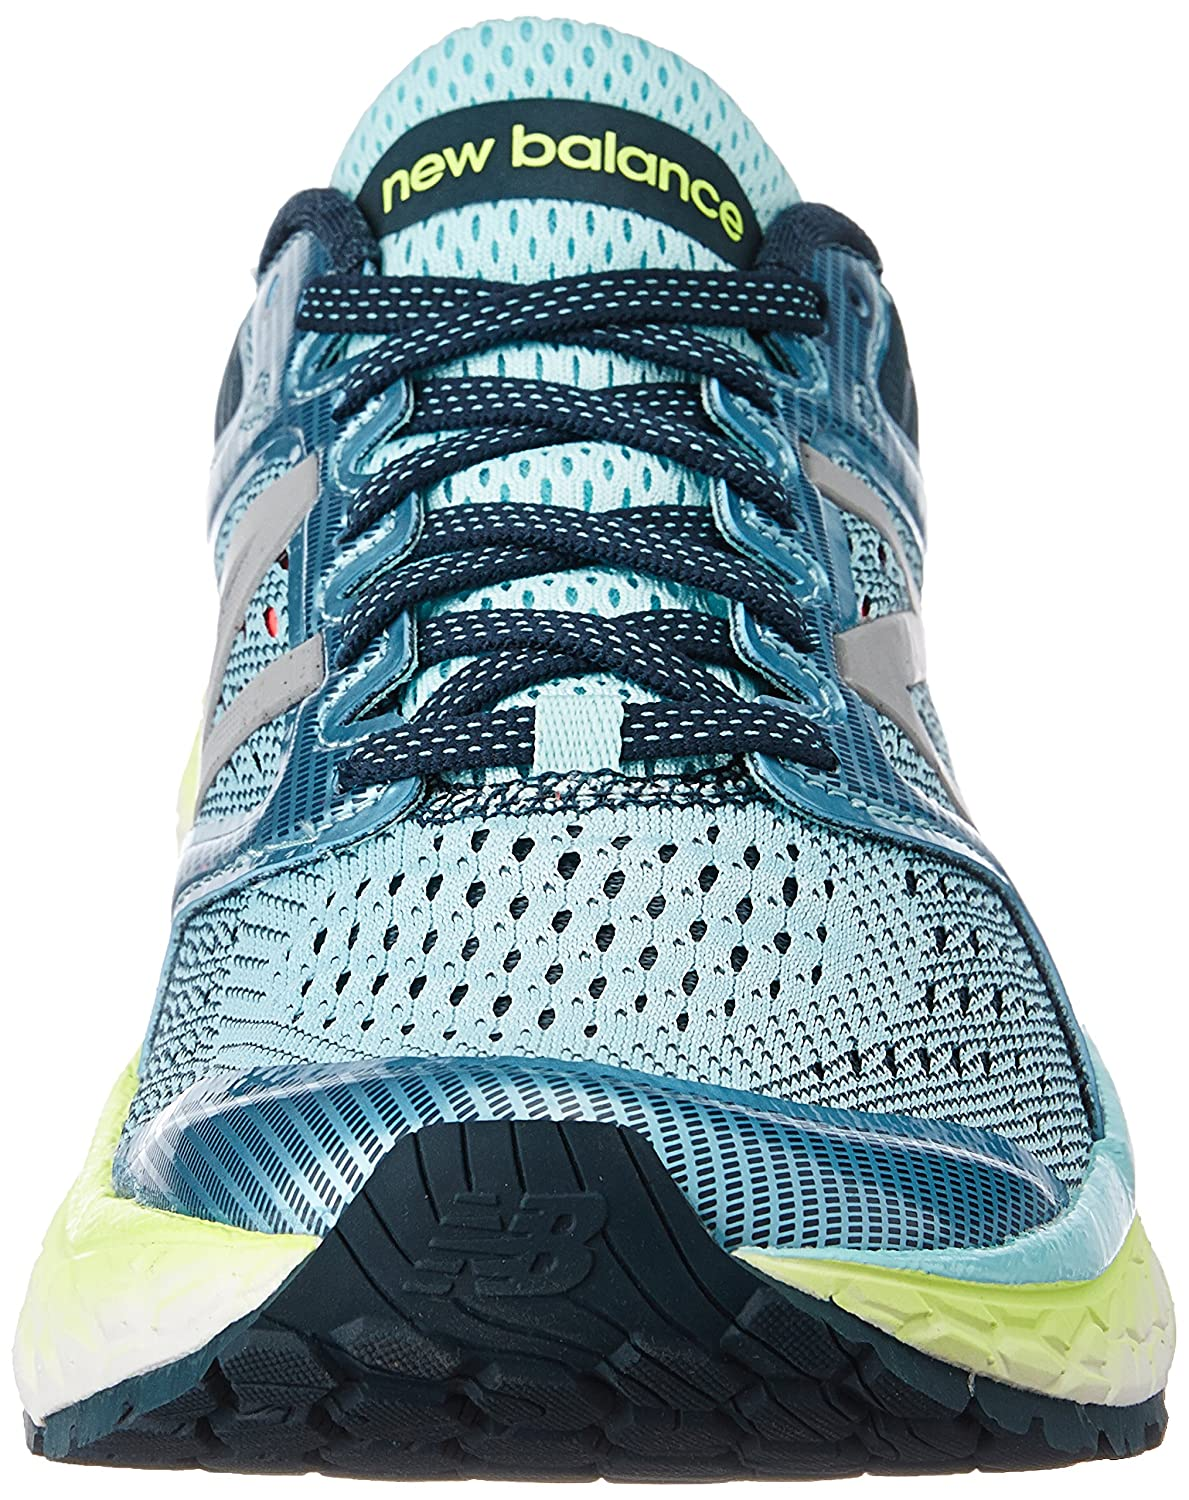 New Balance Women's Fresh Foam 1080v7 Running Shoe B01FSIX5GO 9.5 Glow B(M) US|Ozone Blue Glow/Lime Glow 9.5 9e7de0